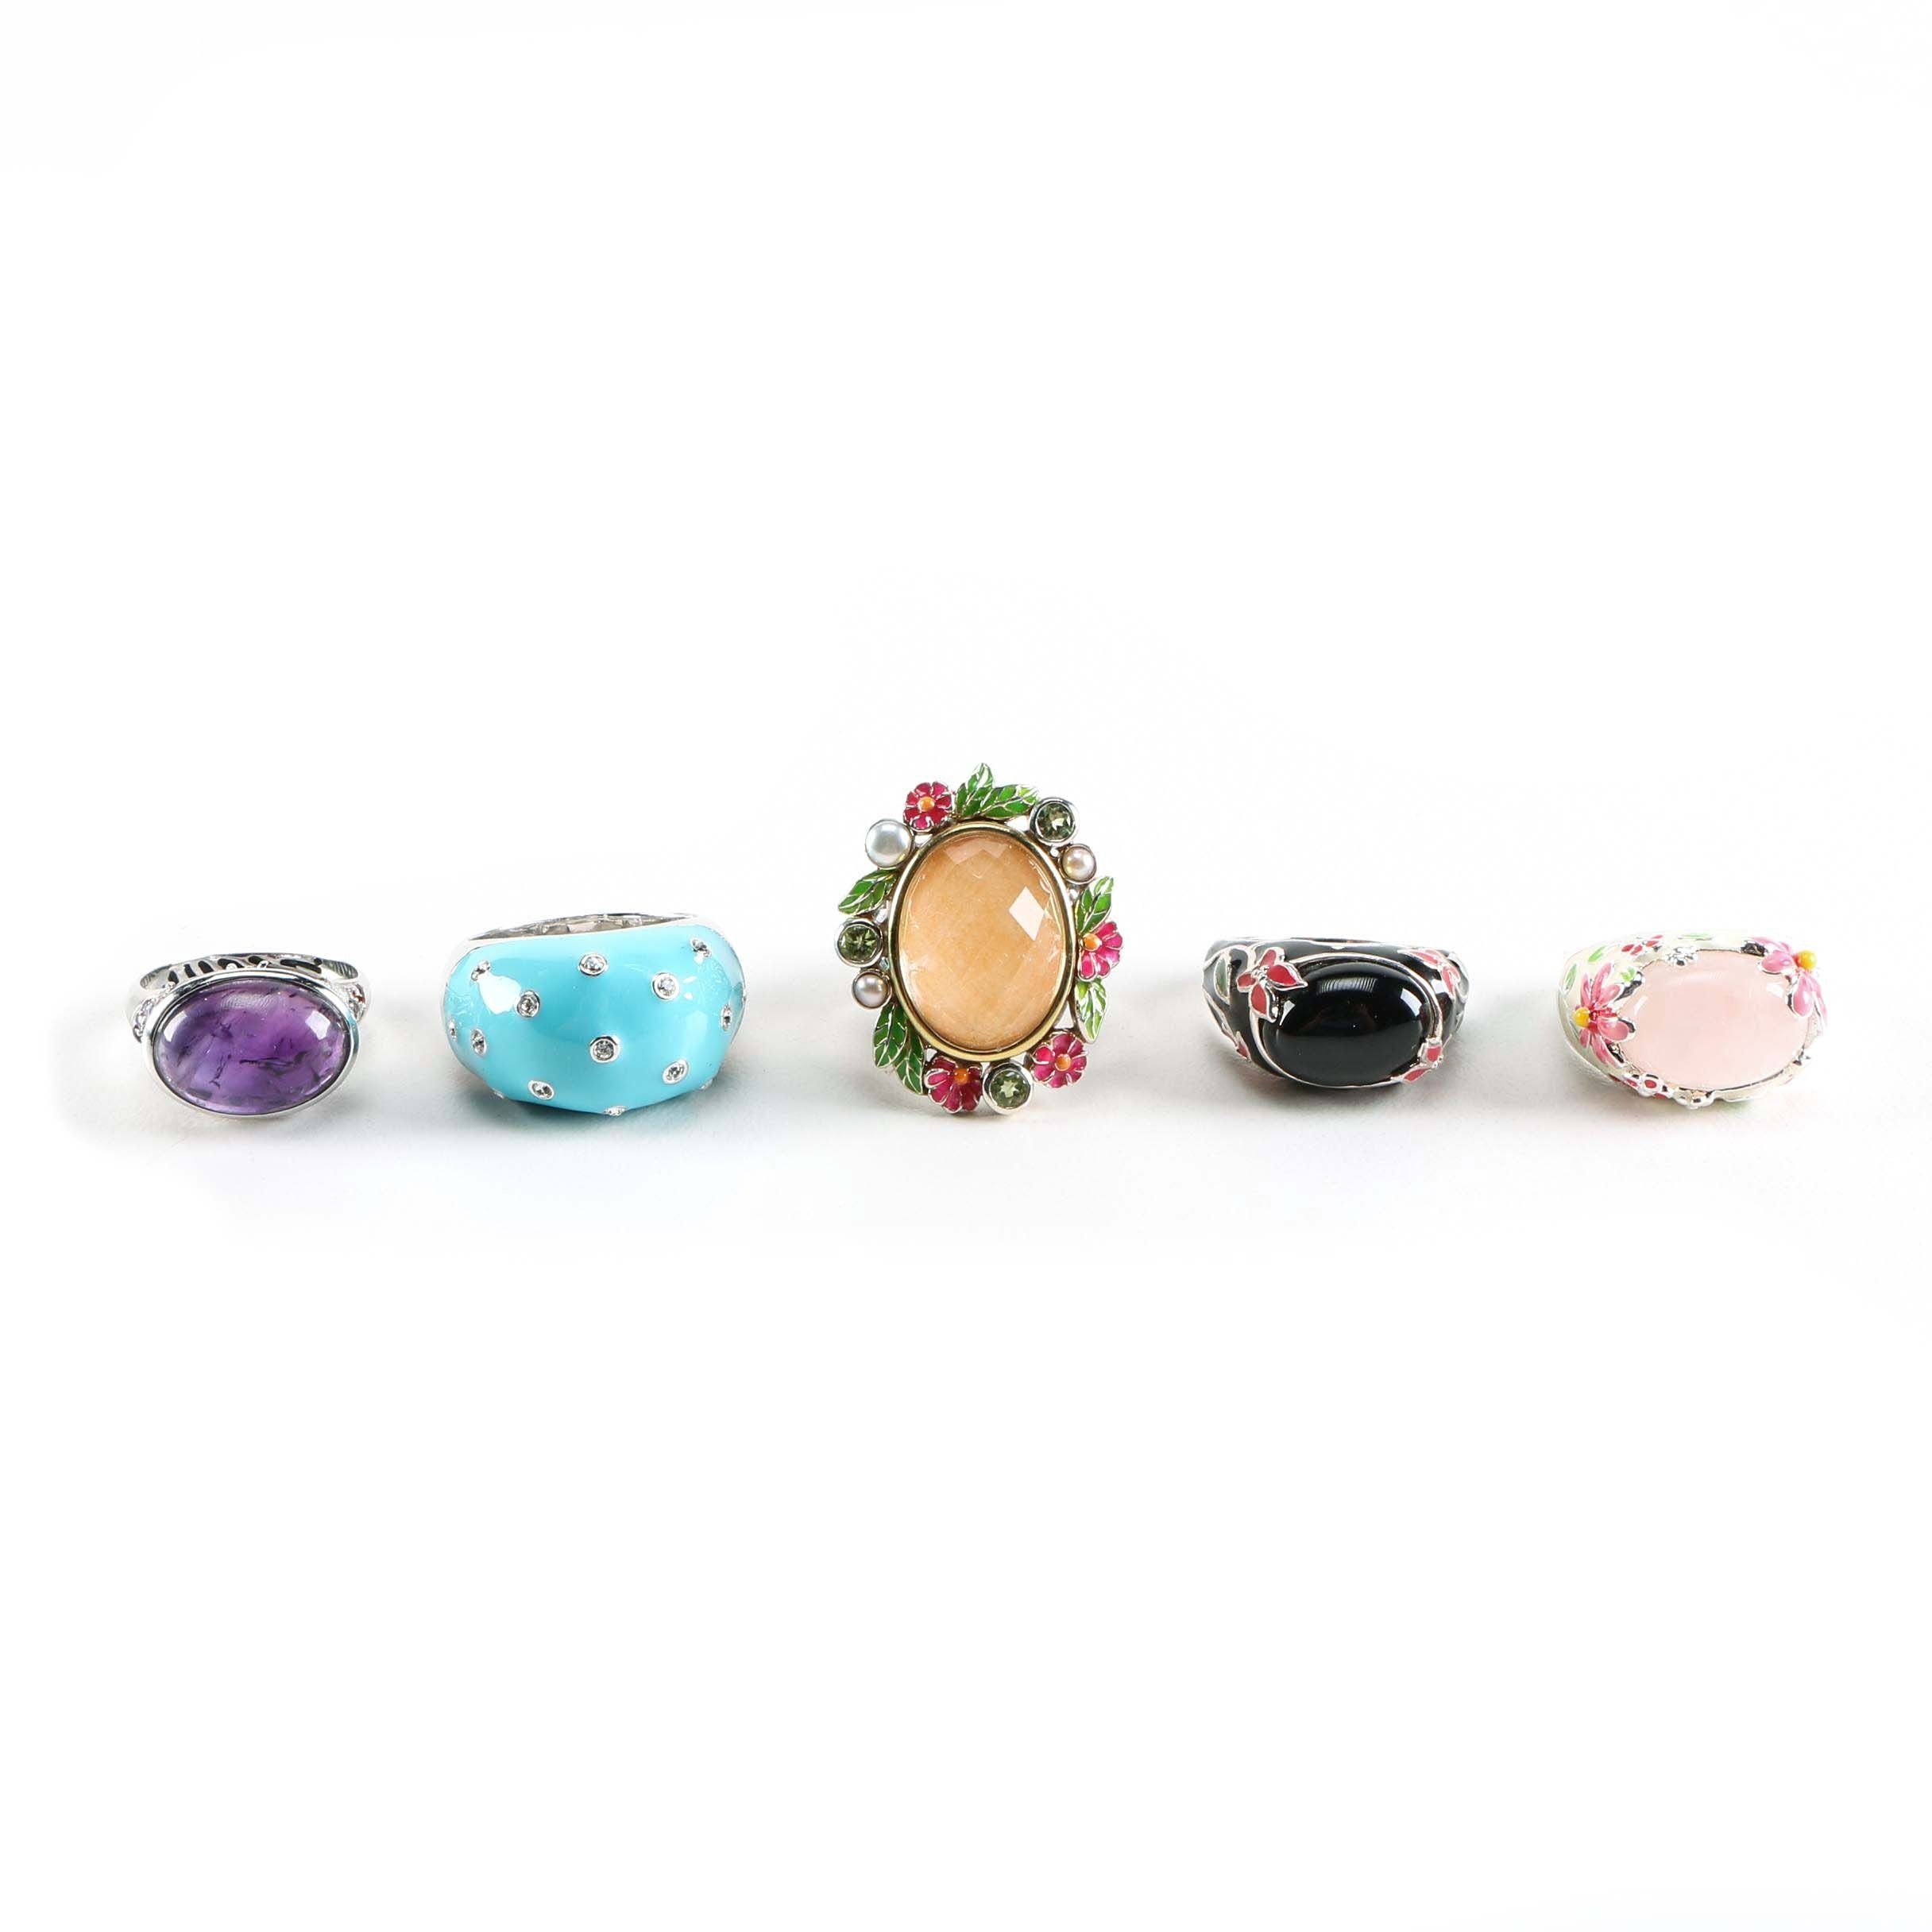 Sterling Silver Rings with Floral Motifs and Gemstones